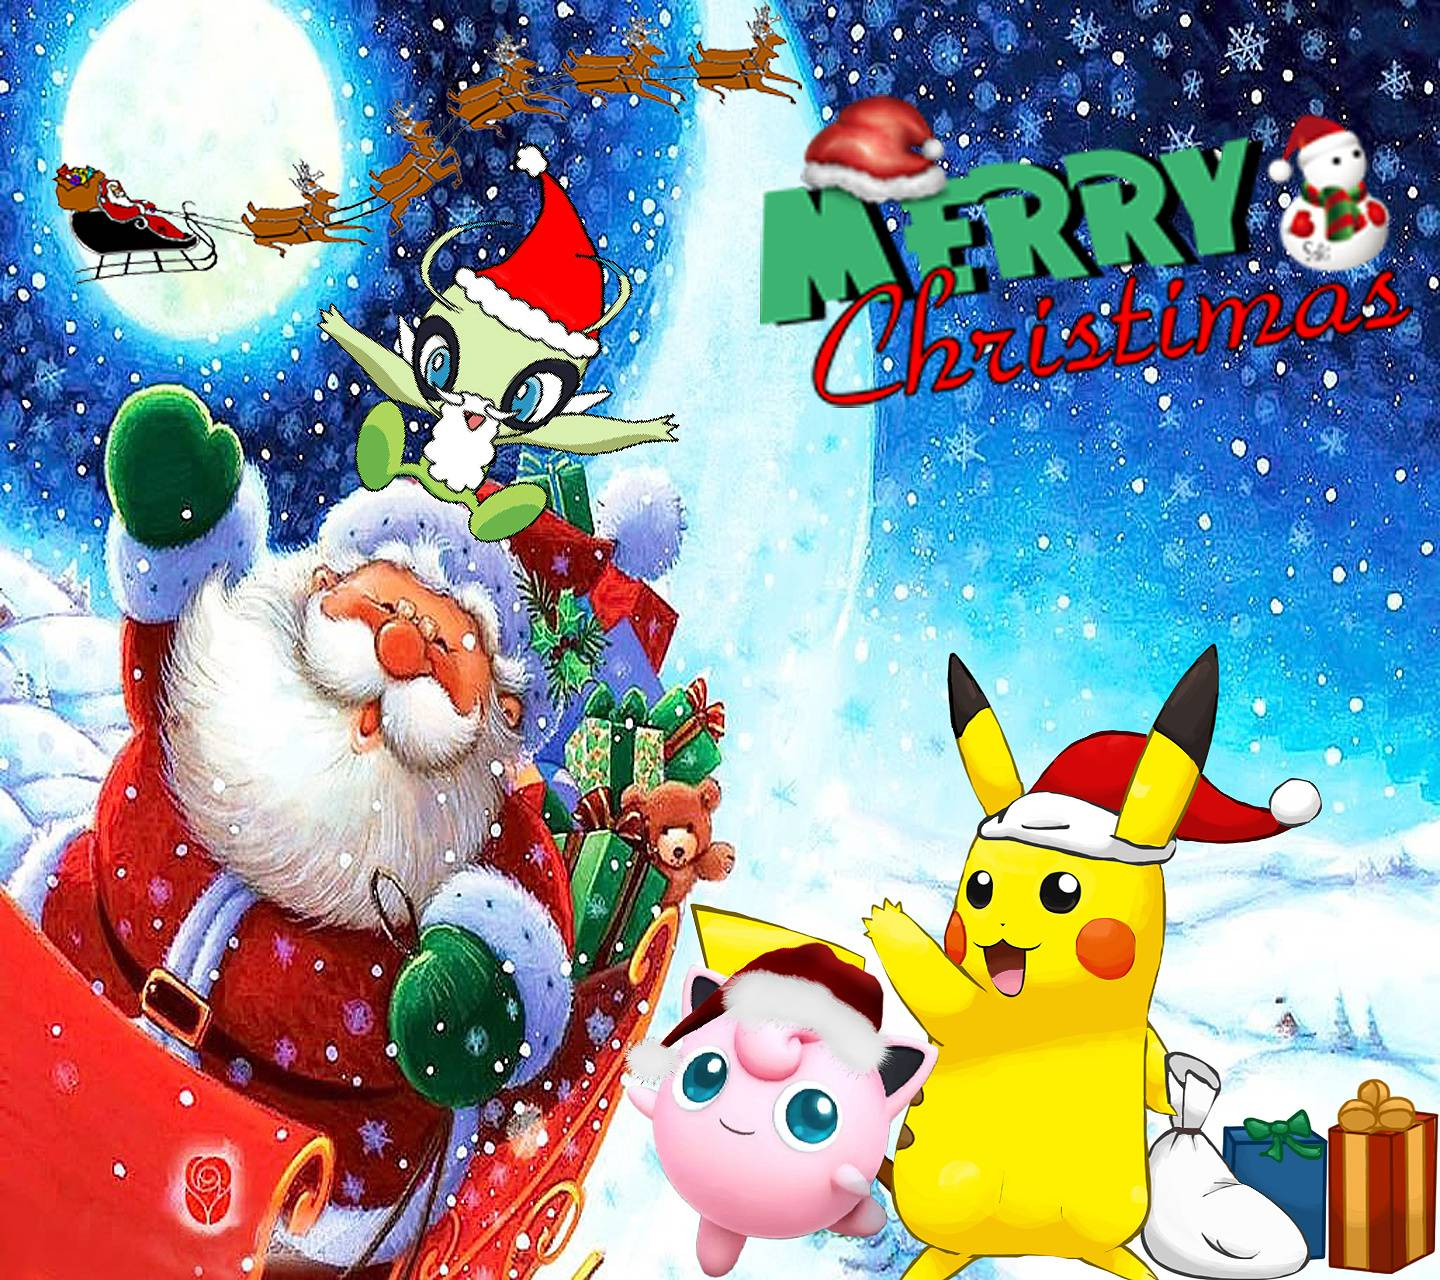 Pokemon Christmas.A Pokemon Christmas Wallpaper By Blacklightning388 3a